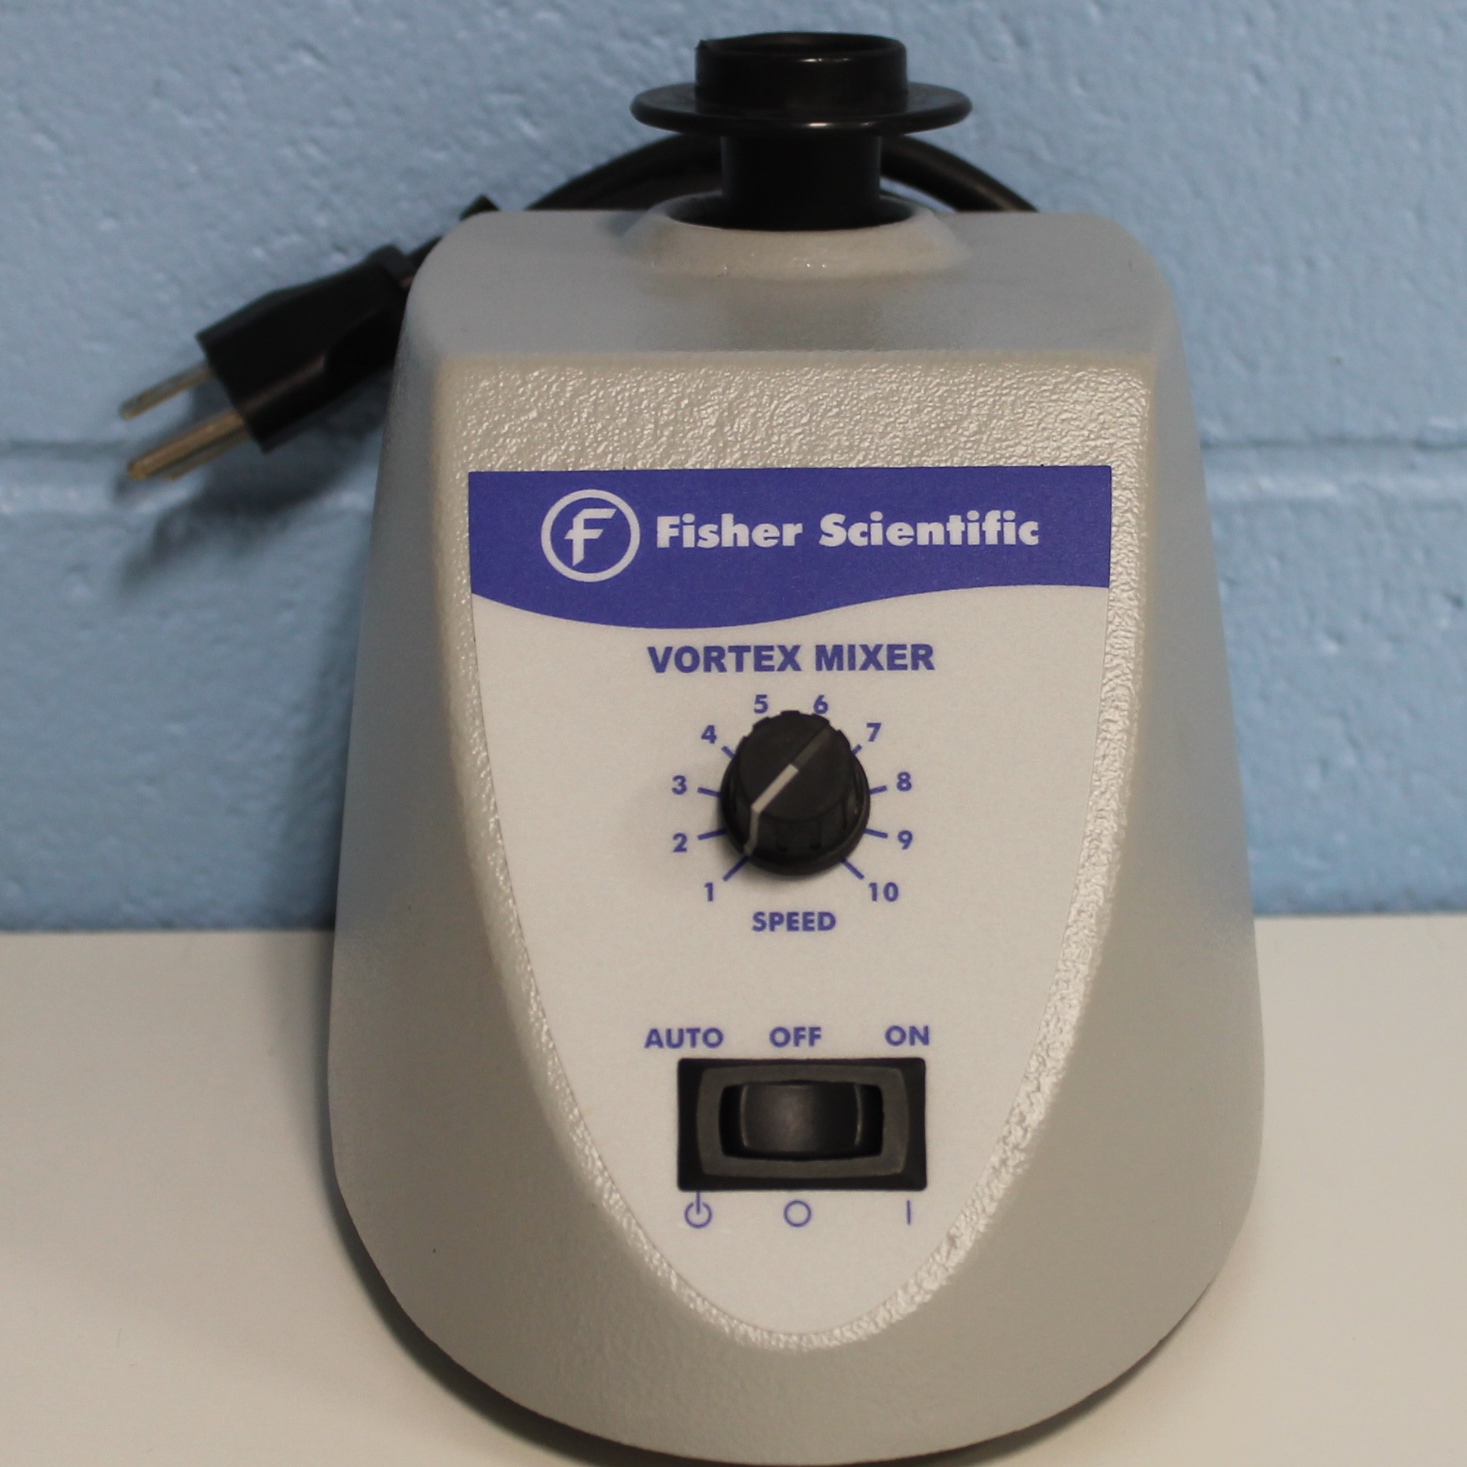 Fisher Scientific Analog Vortex Mixer CAT No. 02215365 Image